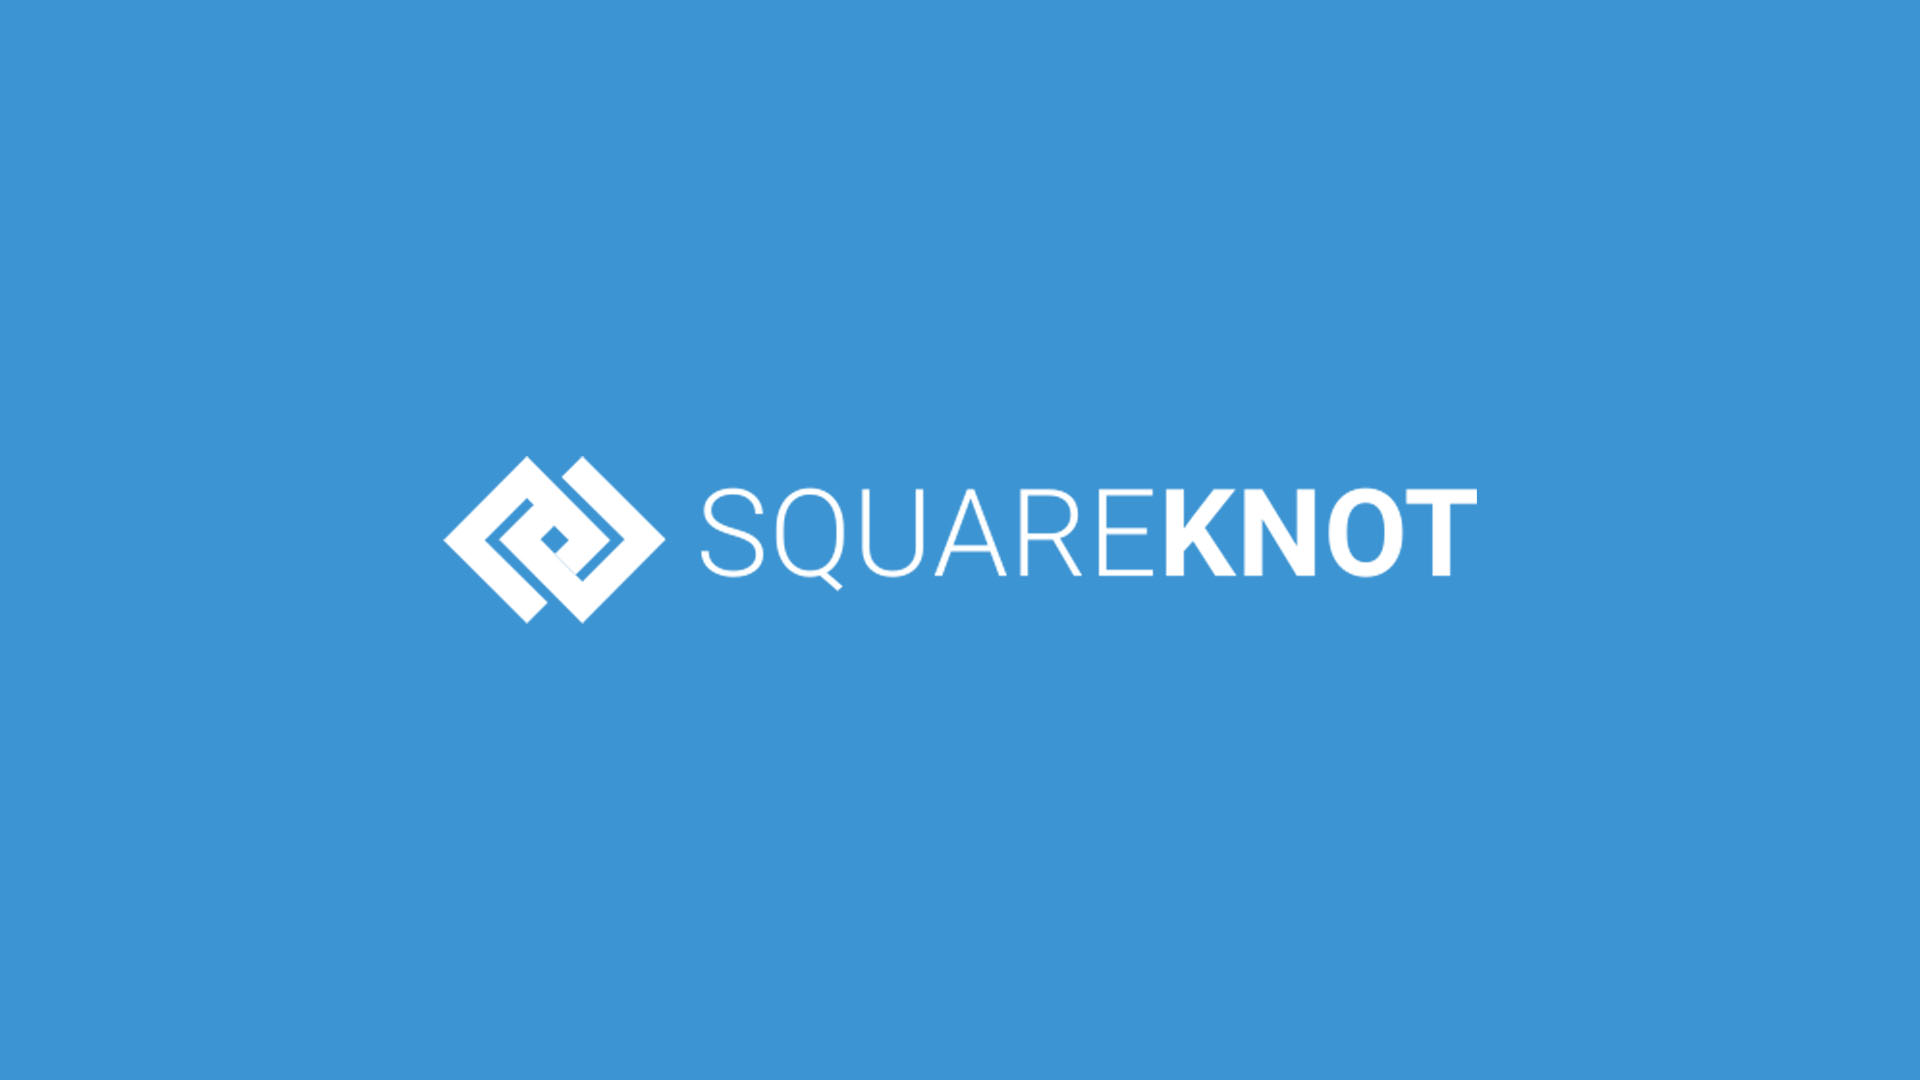 Introducing SquareKnot: Our Responsive CSS Platform